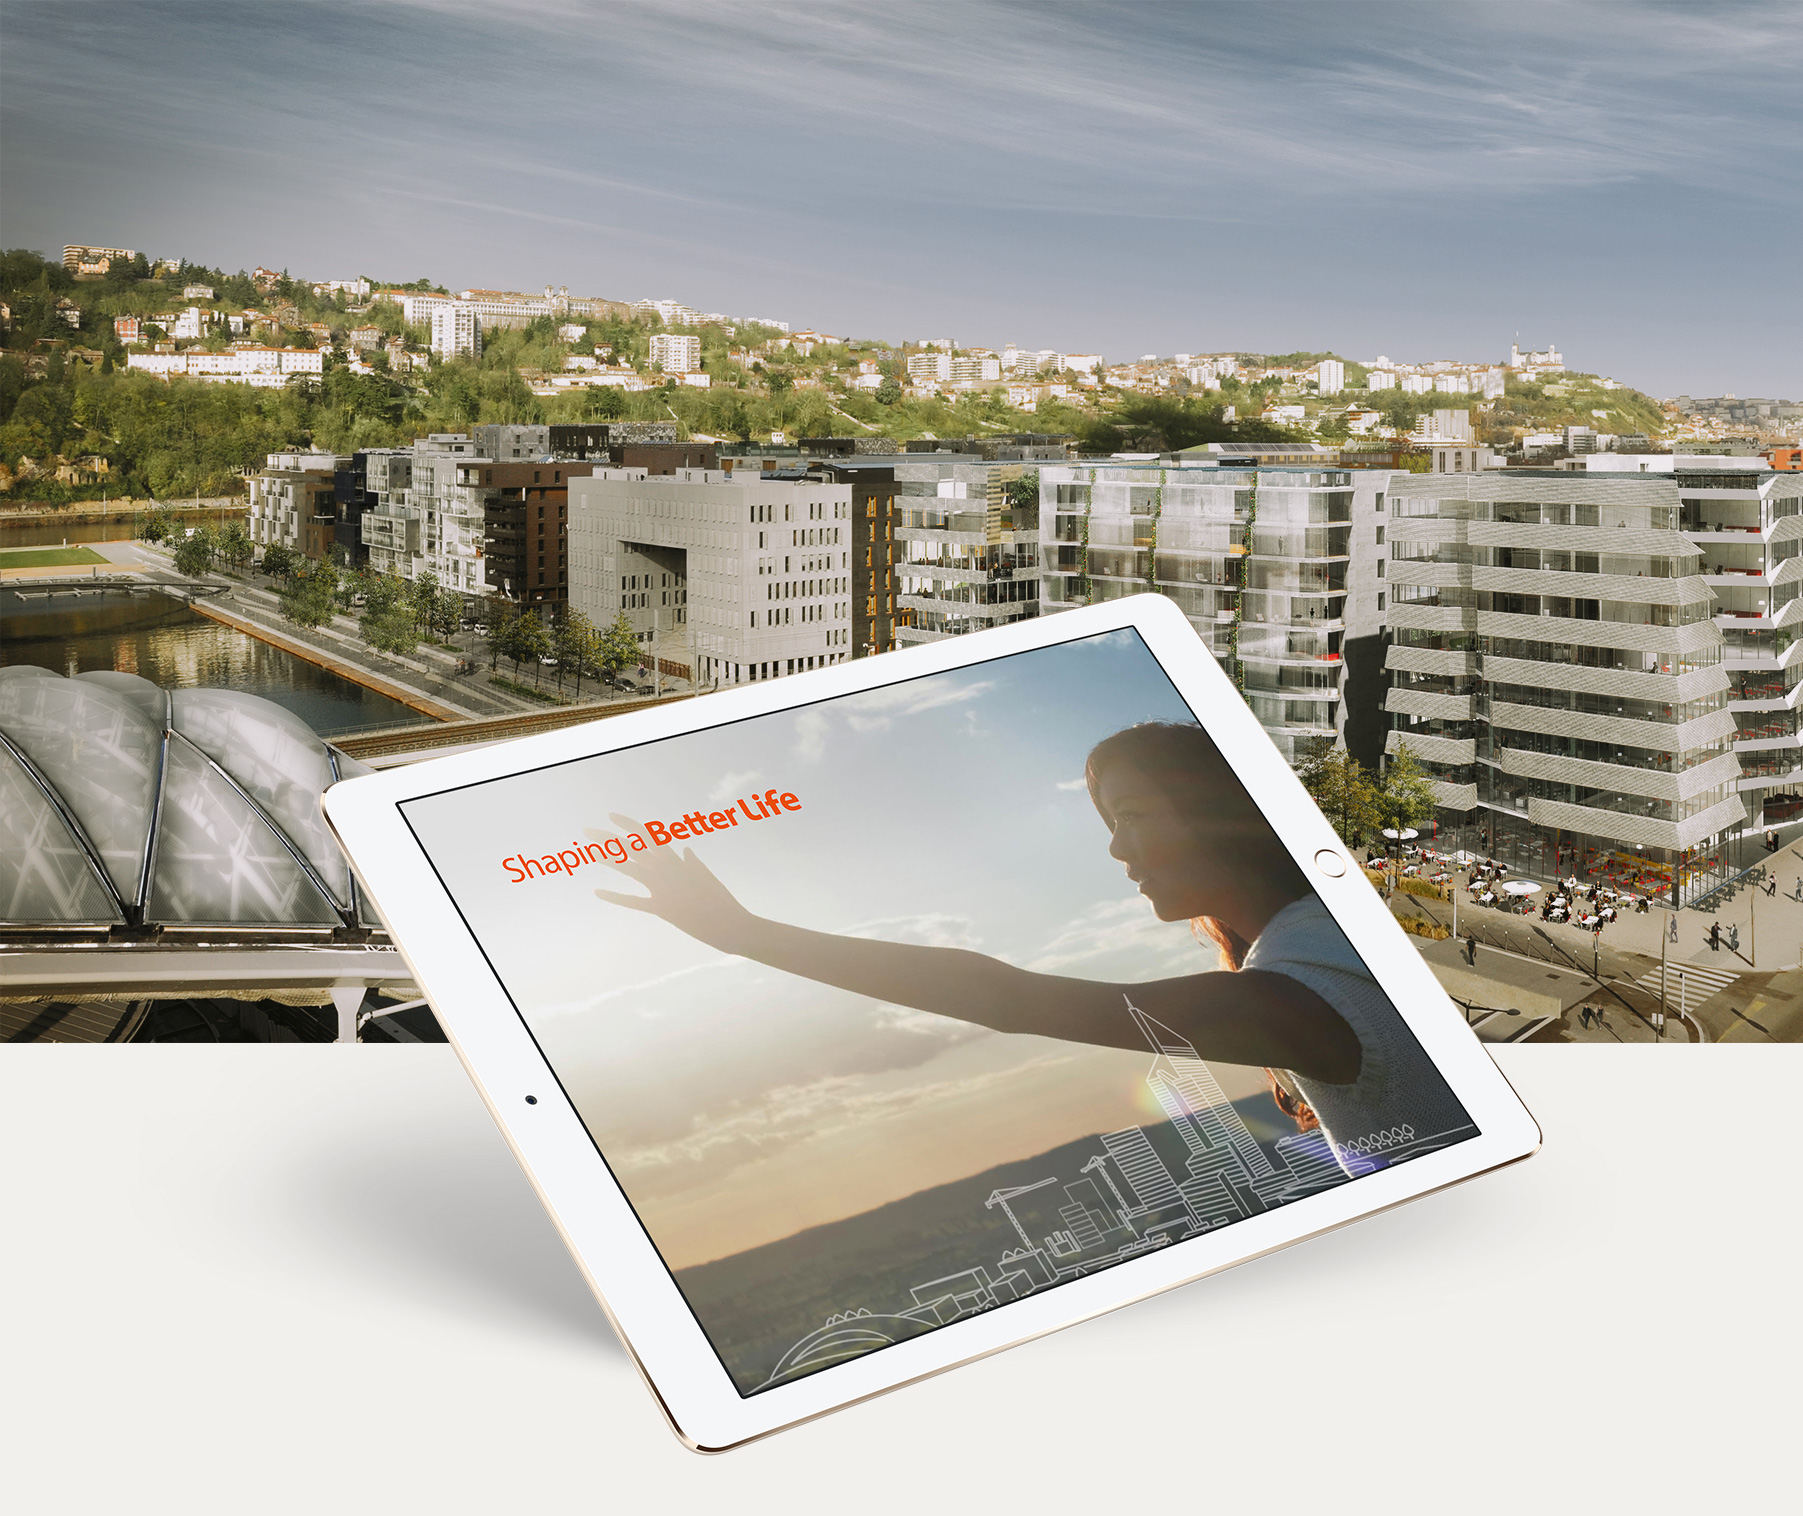 Bouygyes Construction Shaping a better life application app tablet